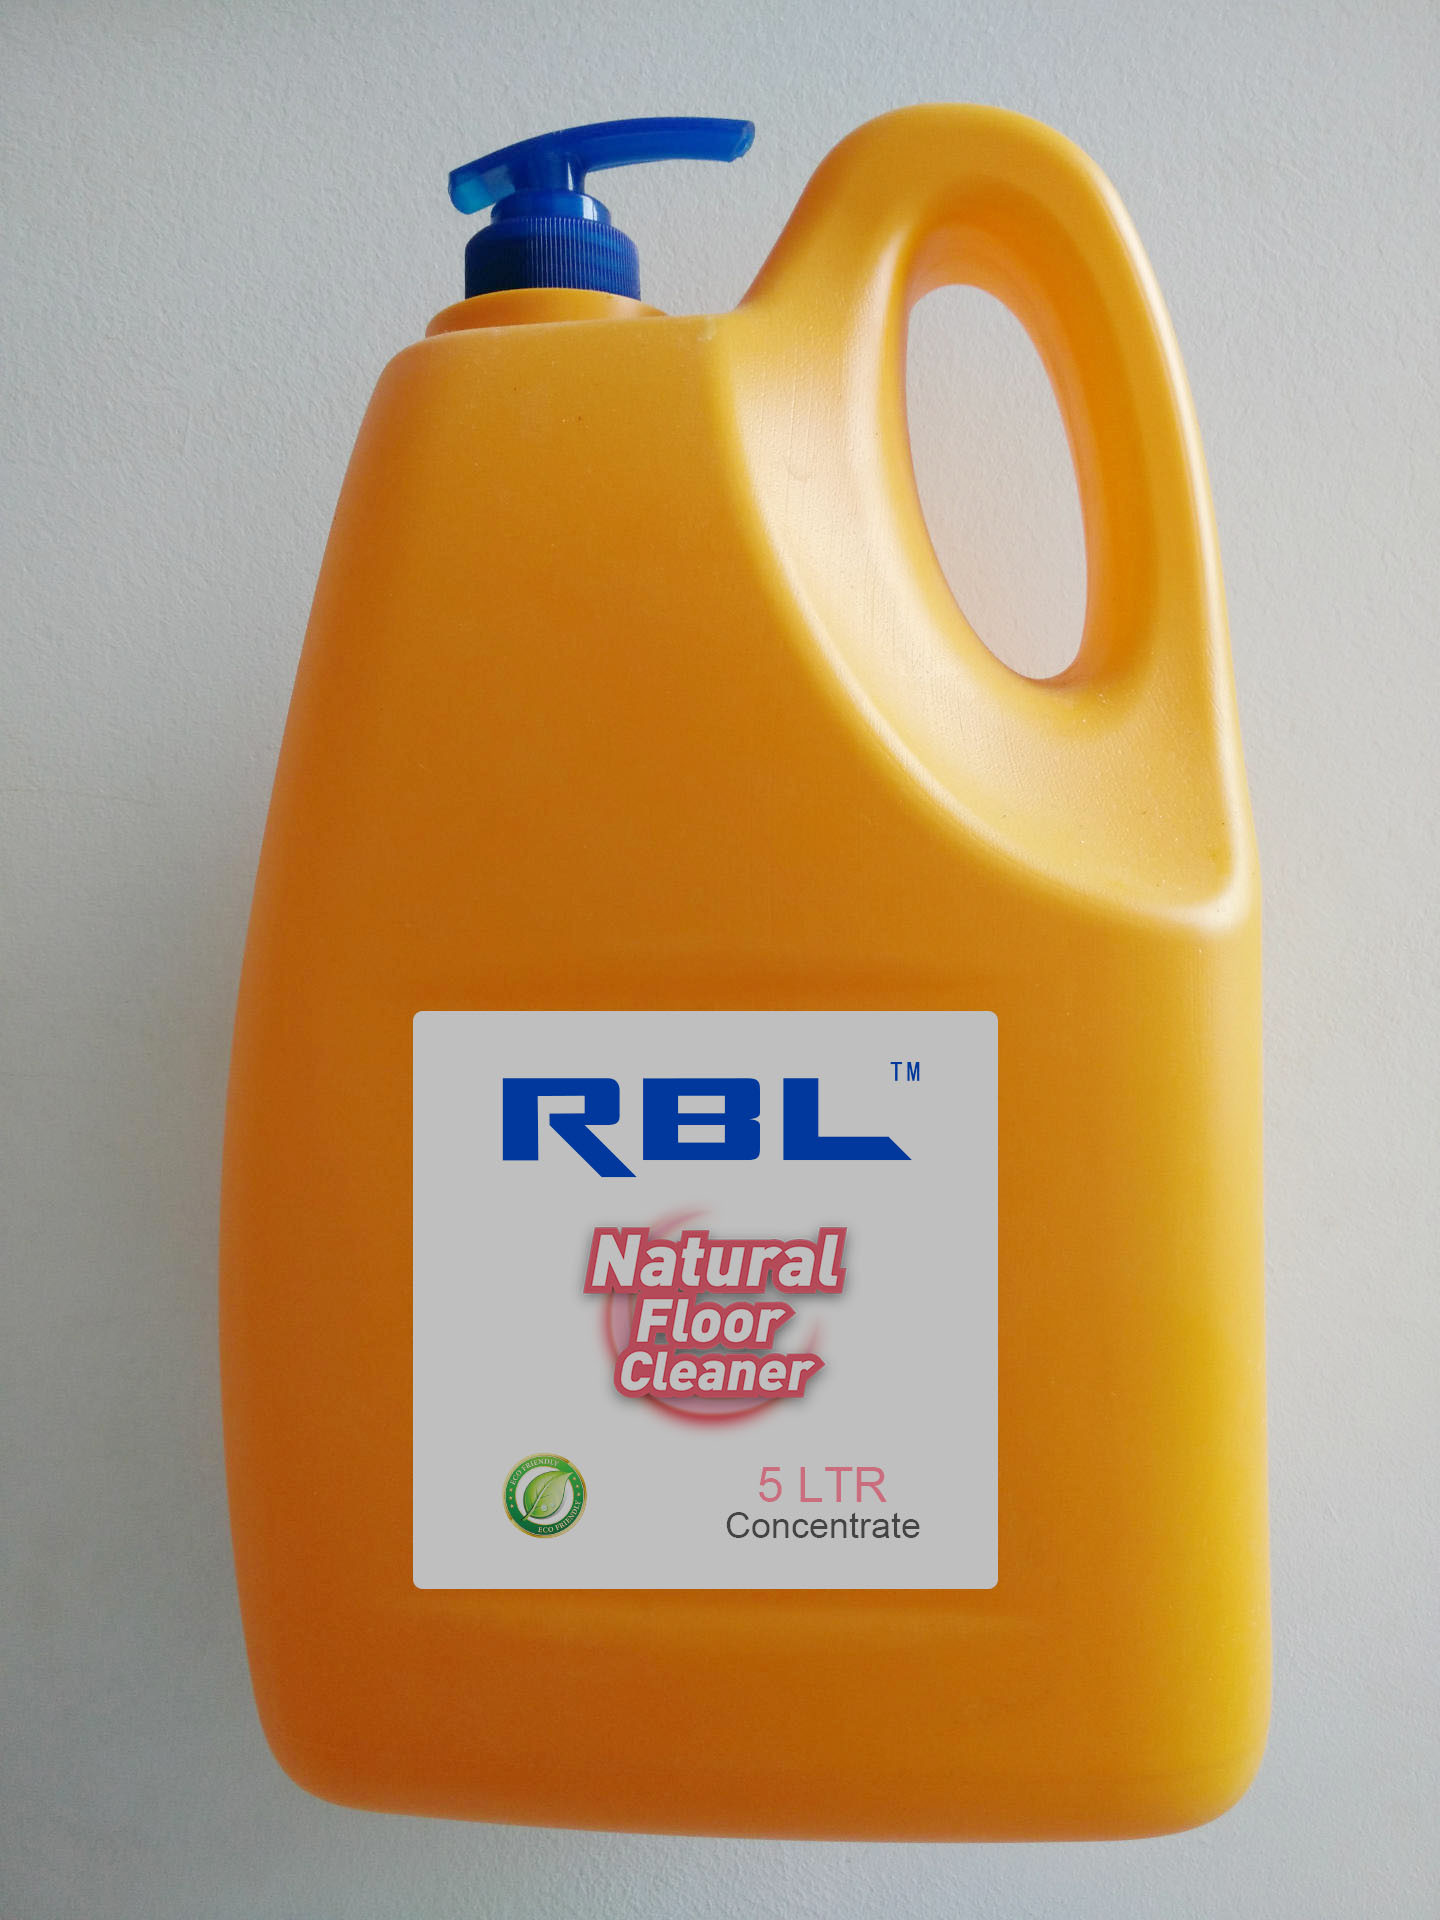 Rbl Natural Stainless Steel Cleaner 5L Concentrated Liquid Detergent Bio-Degreaser